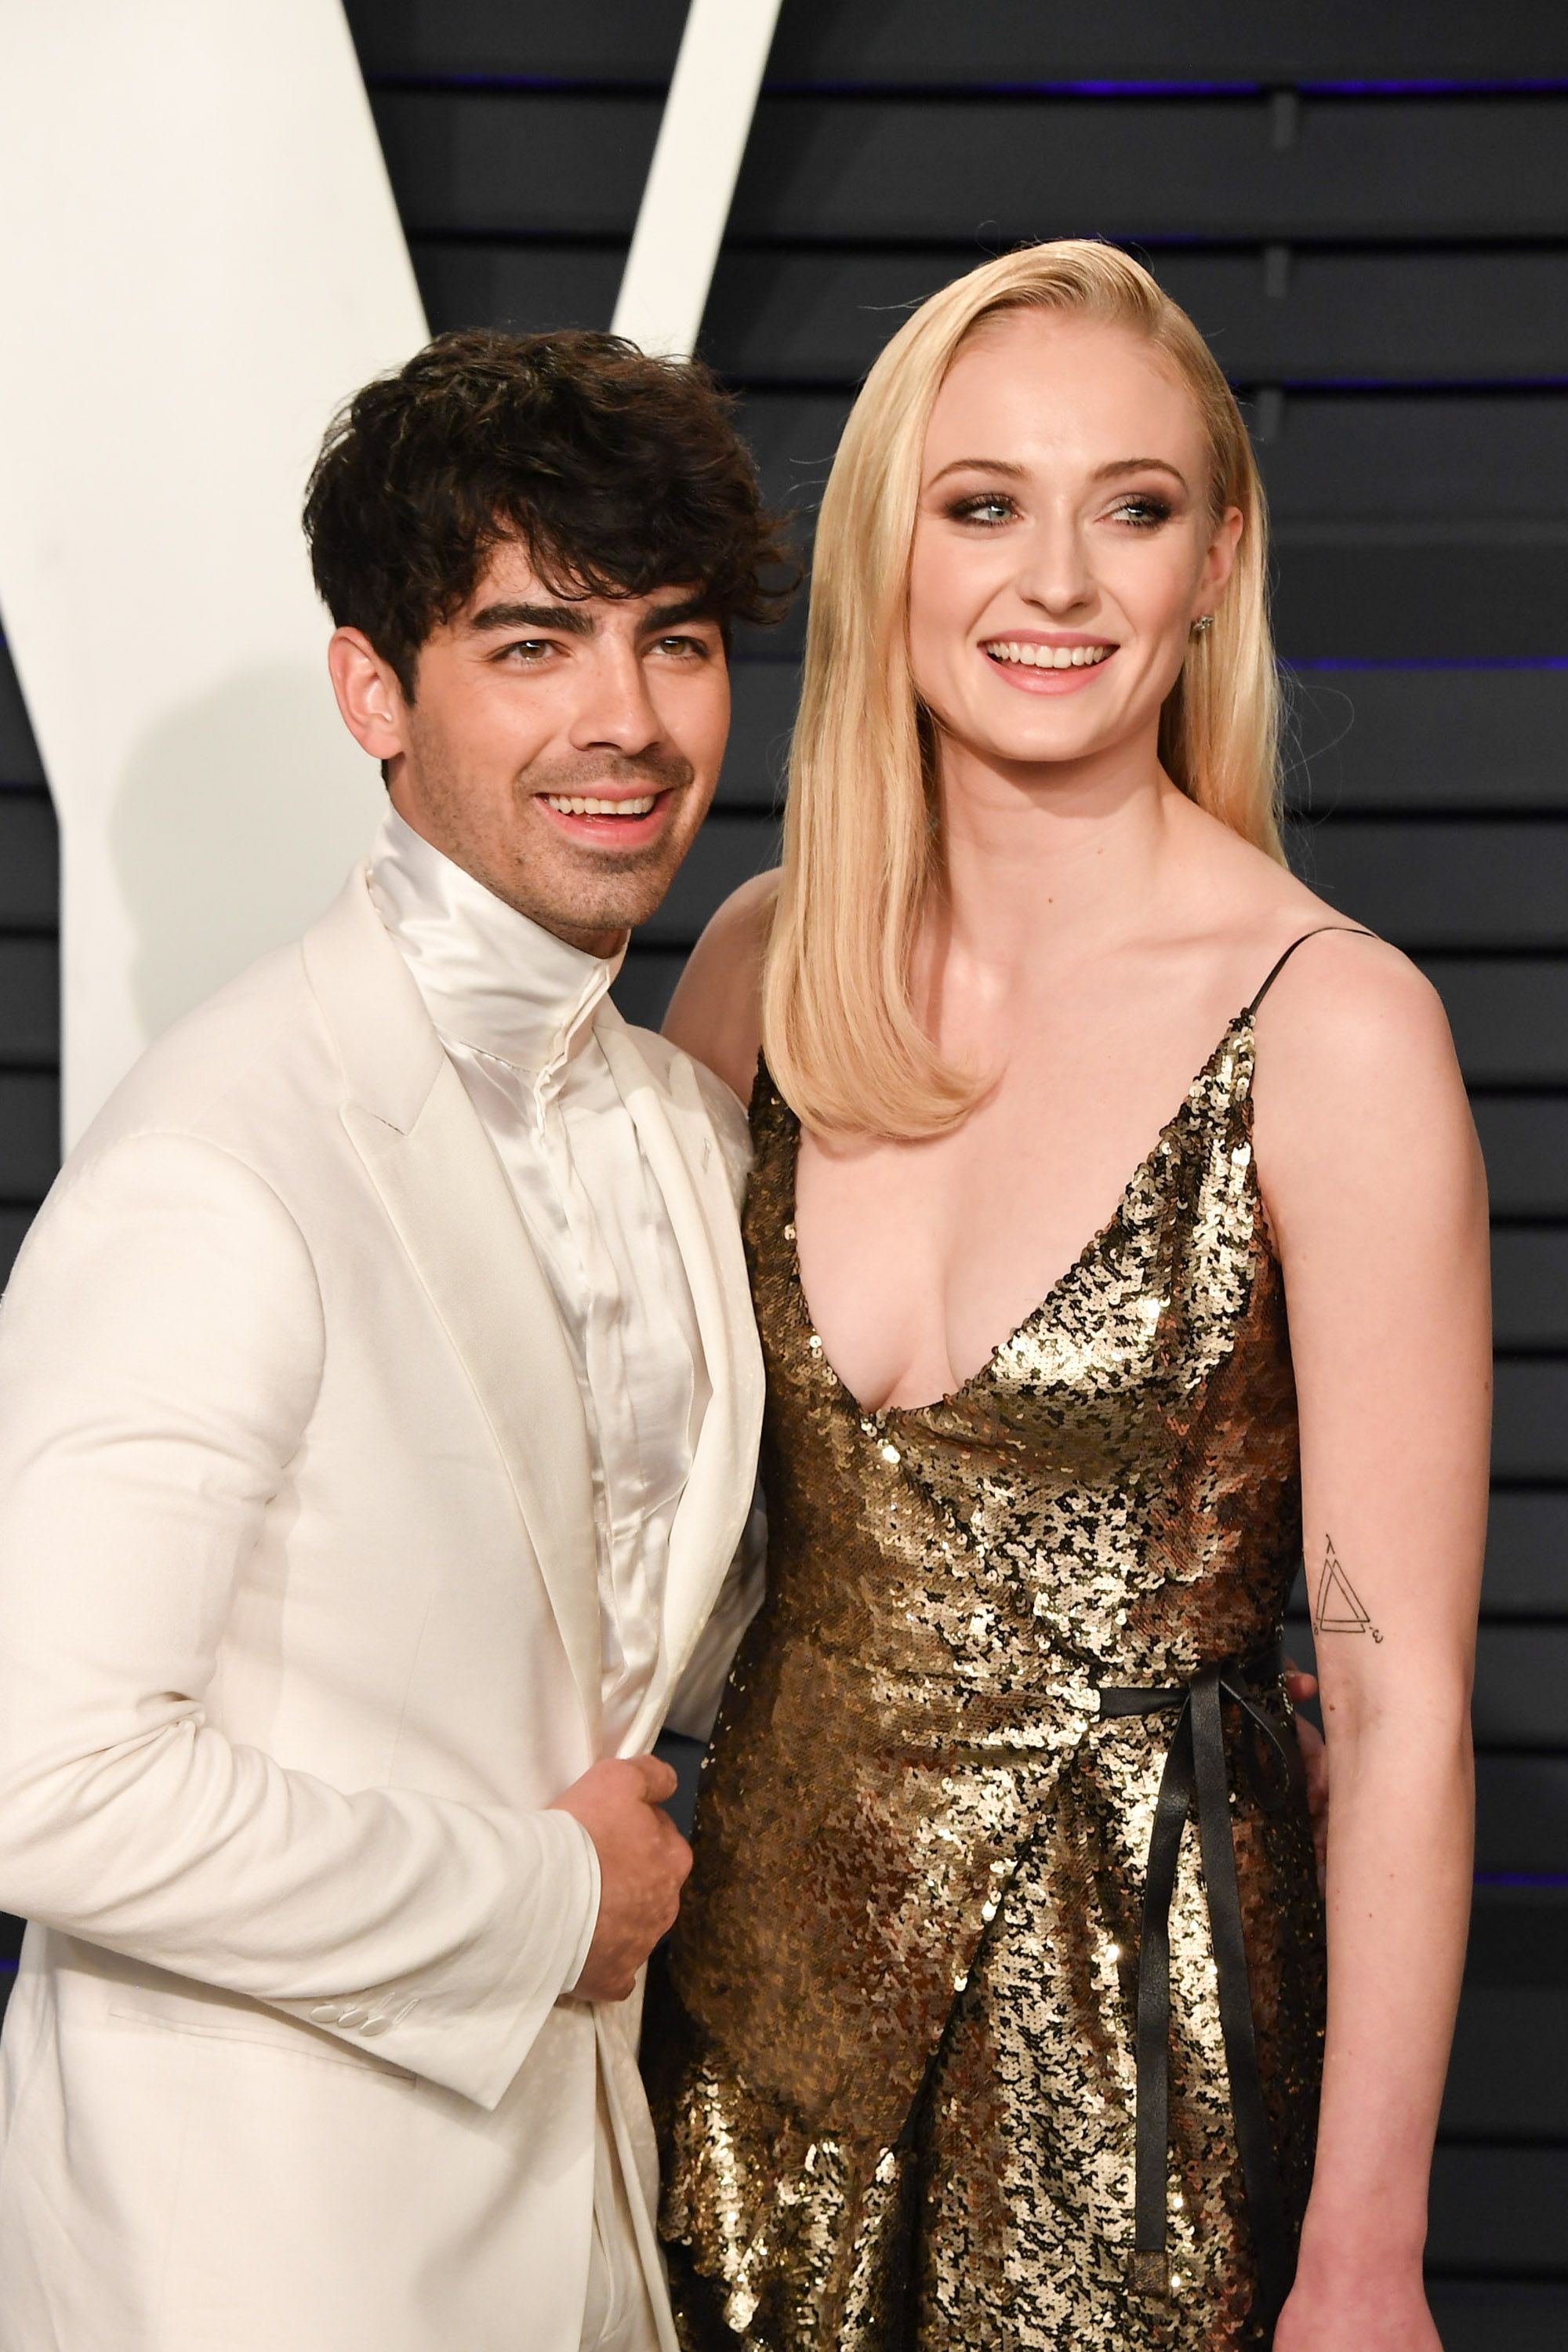 Sophie Turner (Sansa Stark) and Joe Jonas According to the couple, their upcoming summer 2019 wedding will involve flag football and rugby. Can't wait for those wedding photos!